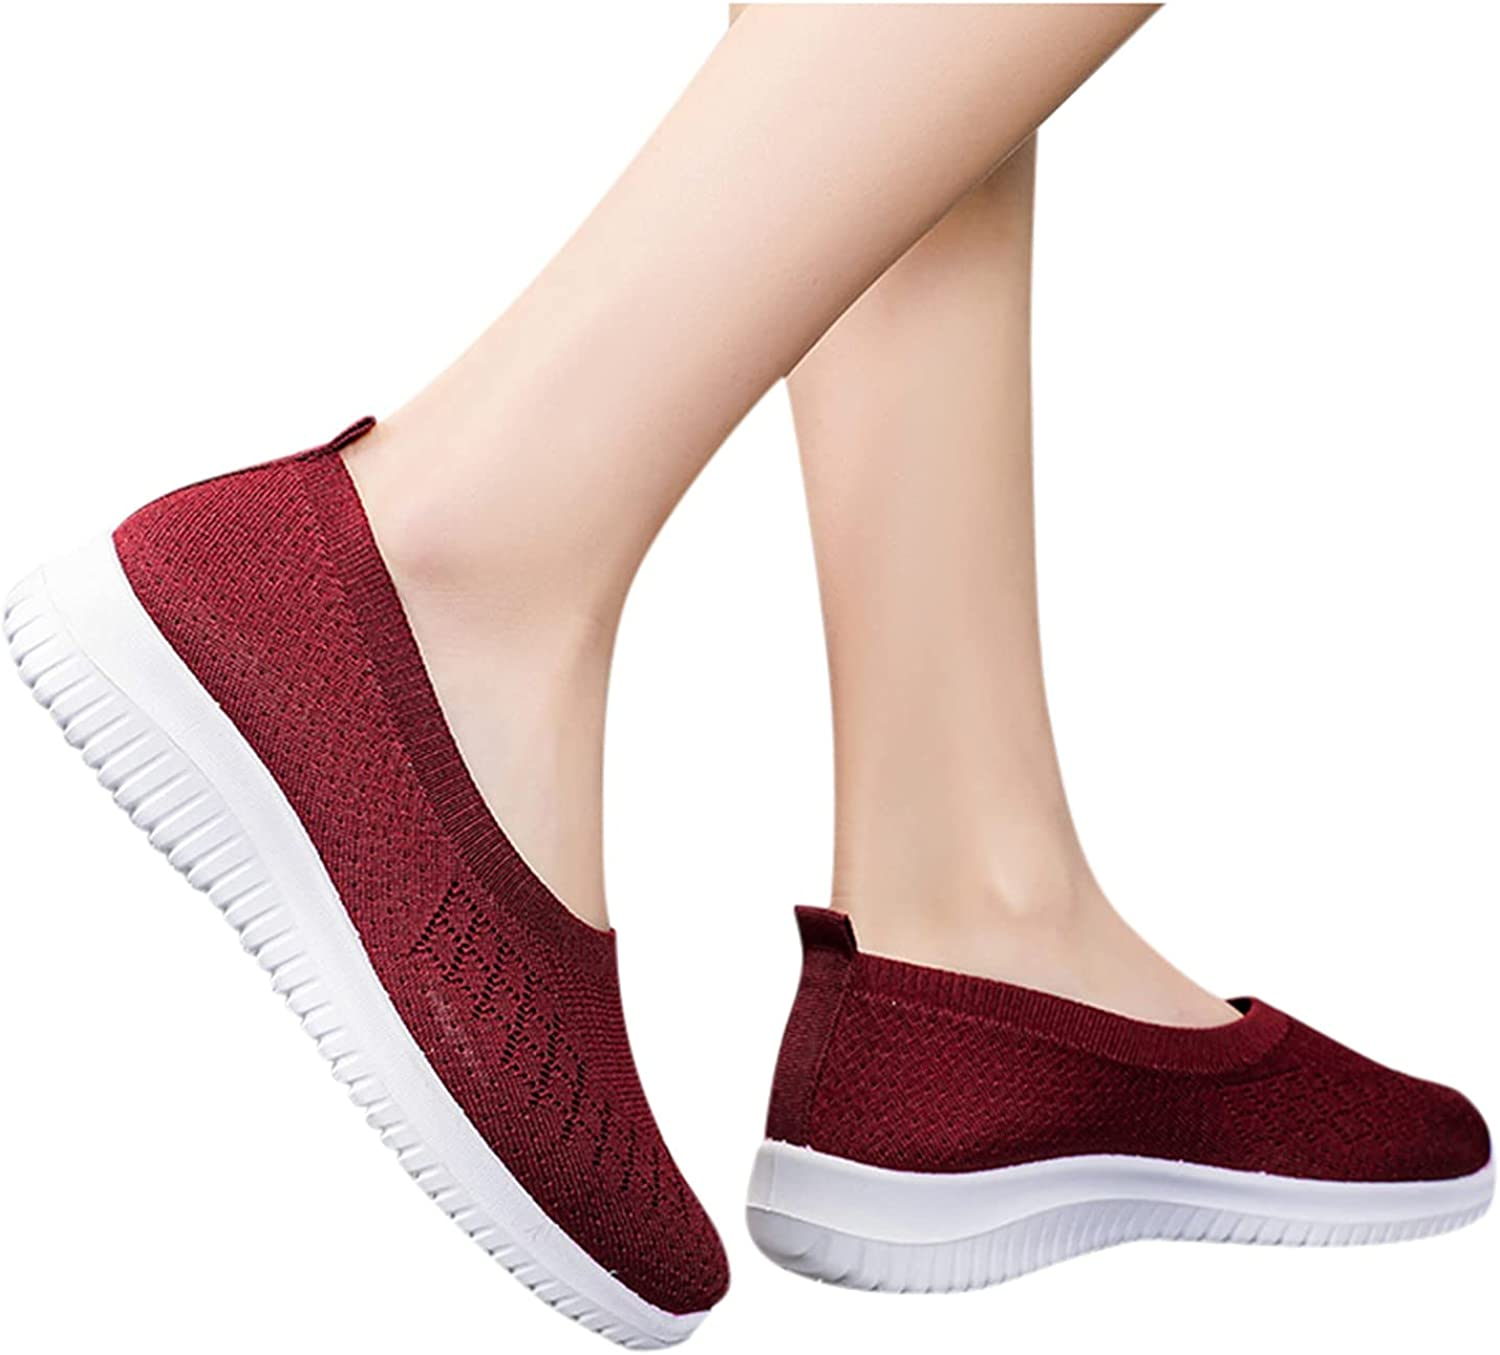 Women's Loafers Soft Sole Mesh Lightwigh Shoes Alternative Jacksonville Mall dealer Breathable Sports